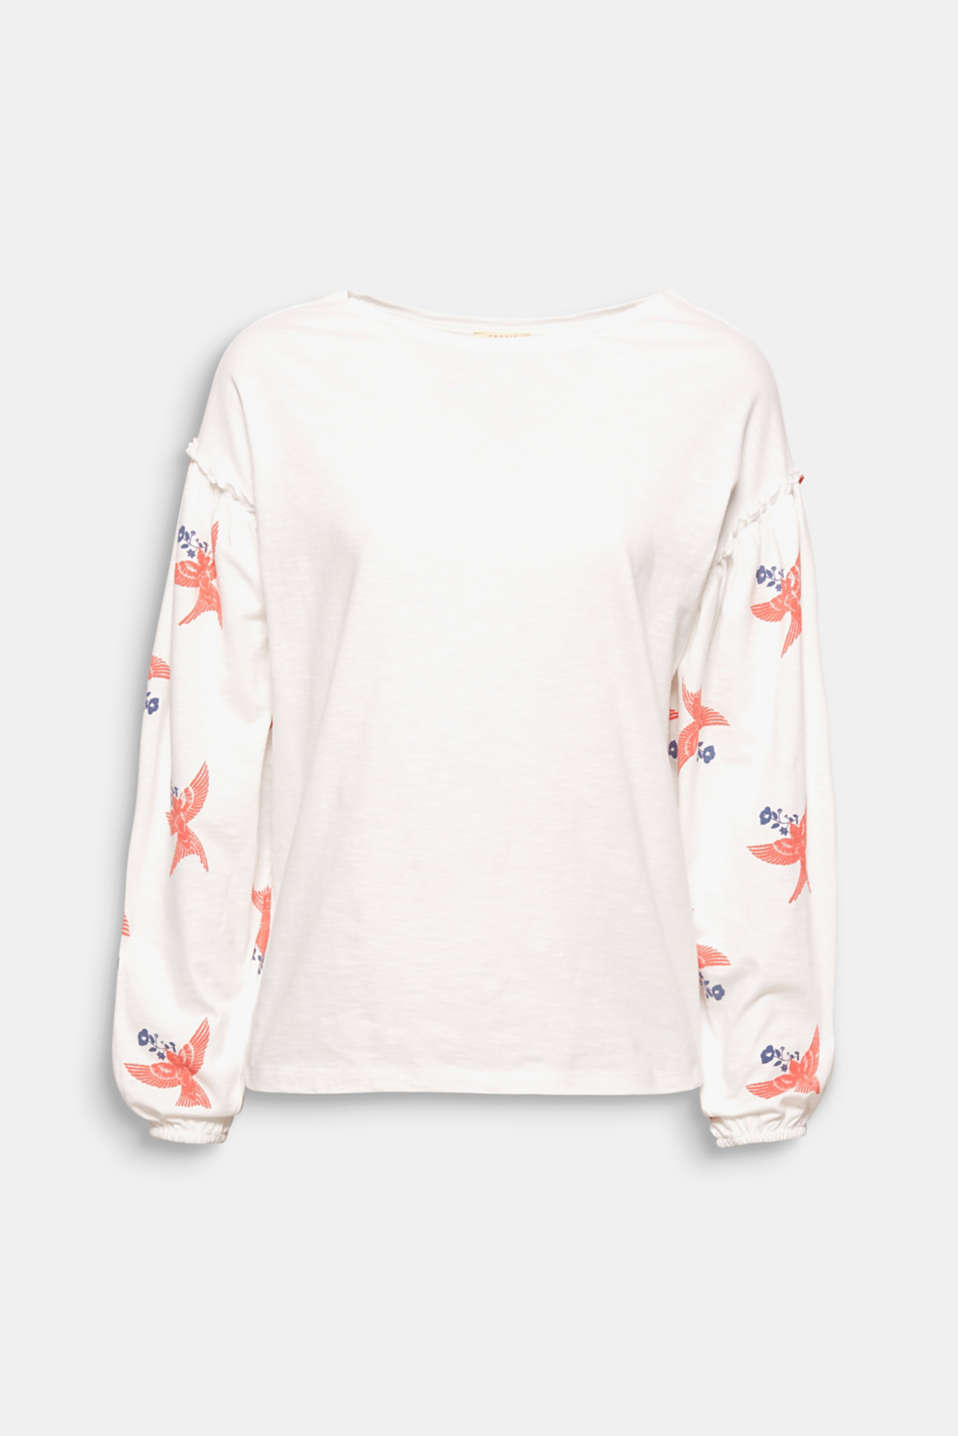 The trendy balloon sleeves are strikingly emphasised by the lightly rubber-coated bird print on this slub, long sleeve top!